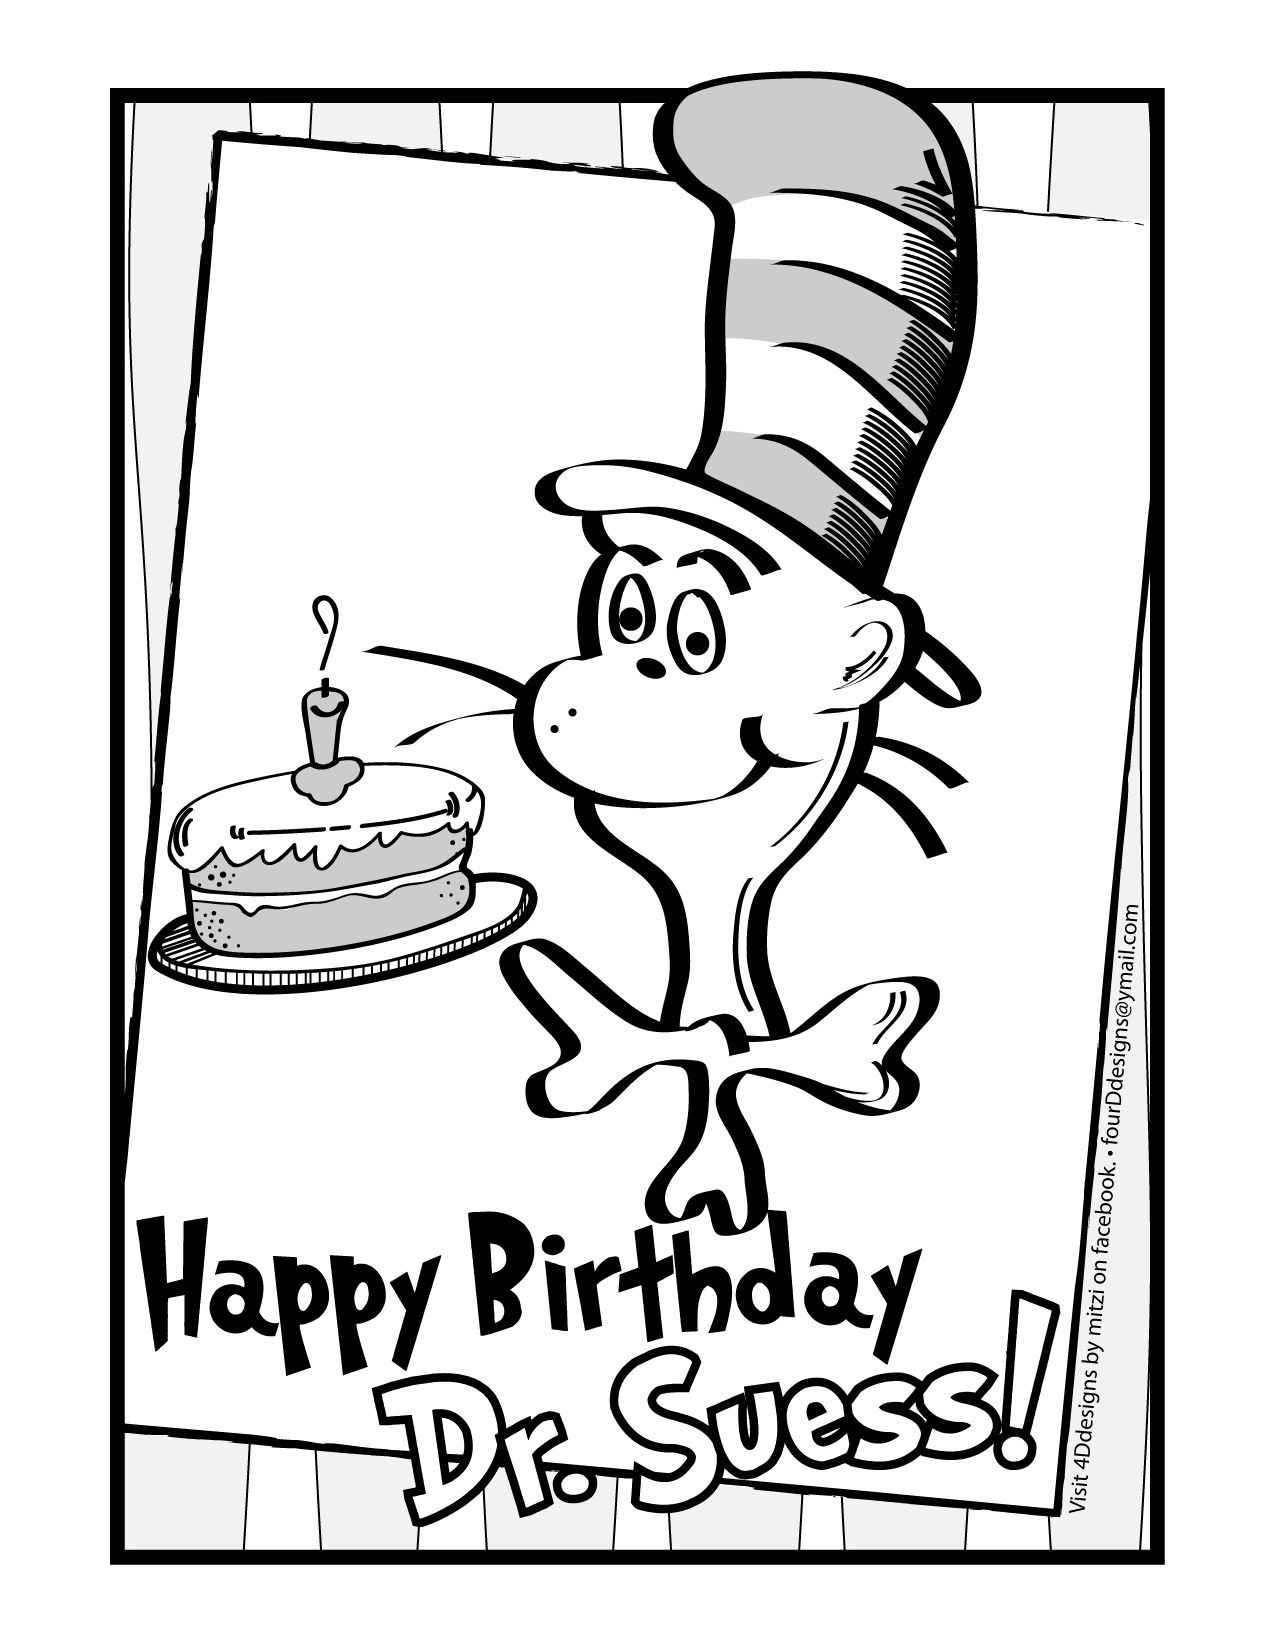 Happy Birthday Dr. Suess! Coloring Page • Free Download   Dr Seuss - Free Printable Dr Seuss Coloring Pages